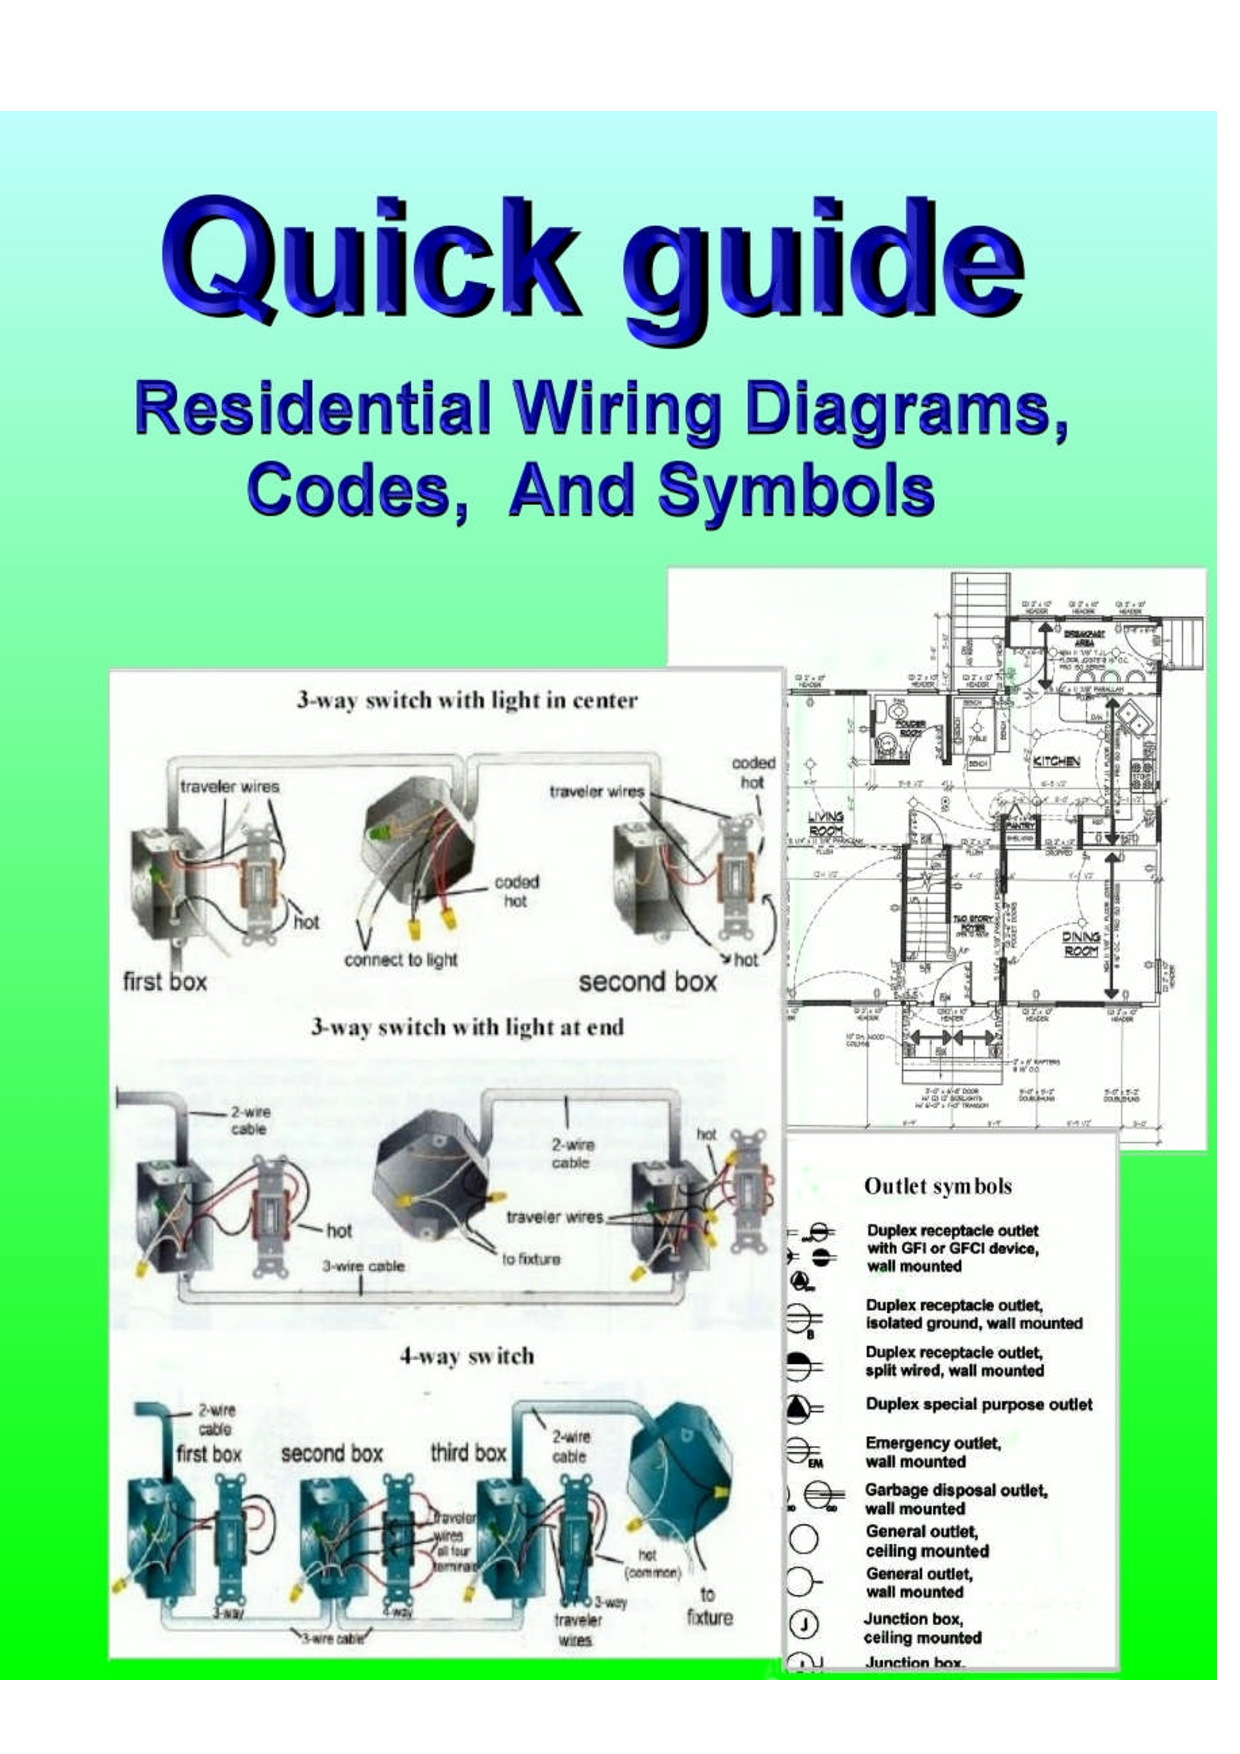 Home Electrical Wiring Diagrams | Cars | Home electrical ... on 3 wire rocker switch wiring diagram, 3 wire proximity switch wiring, 3 wire rtd wiring diagram,